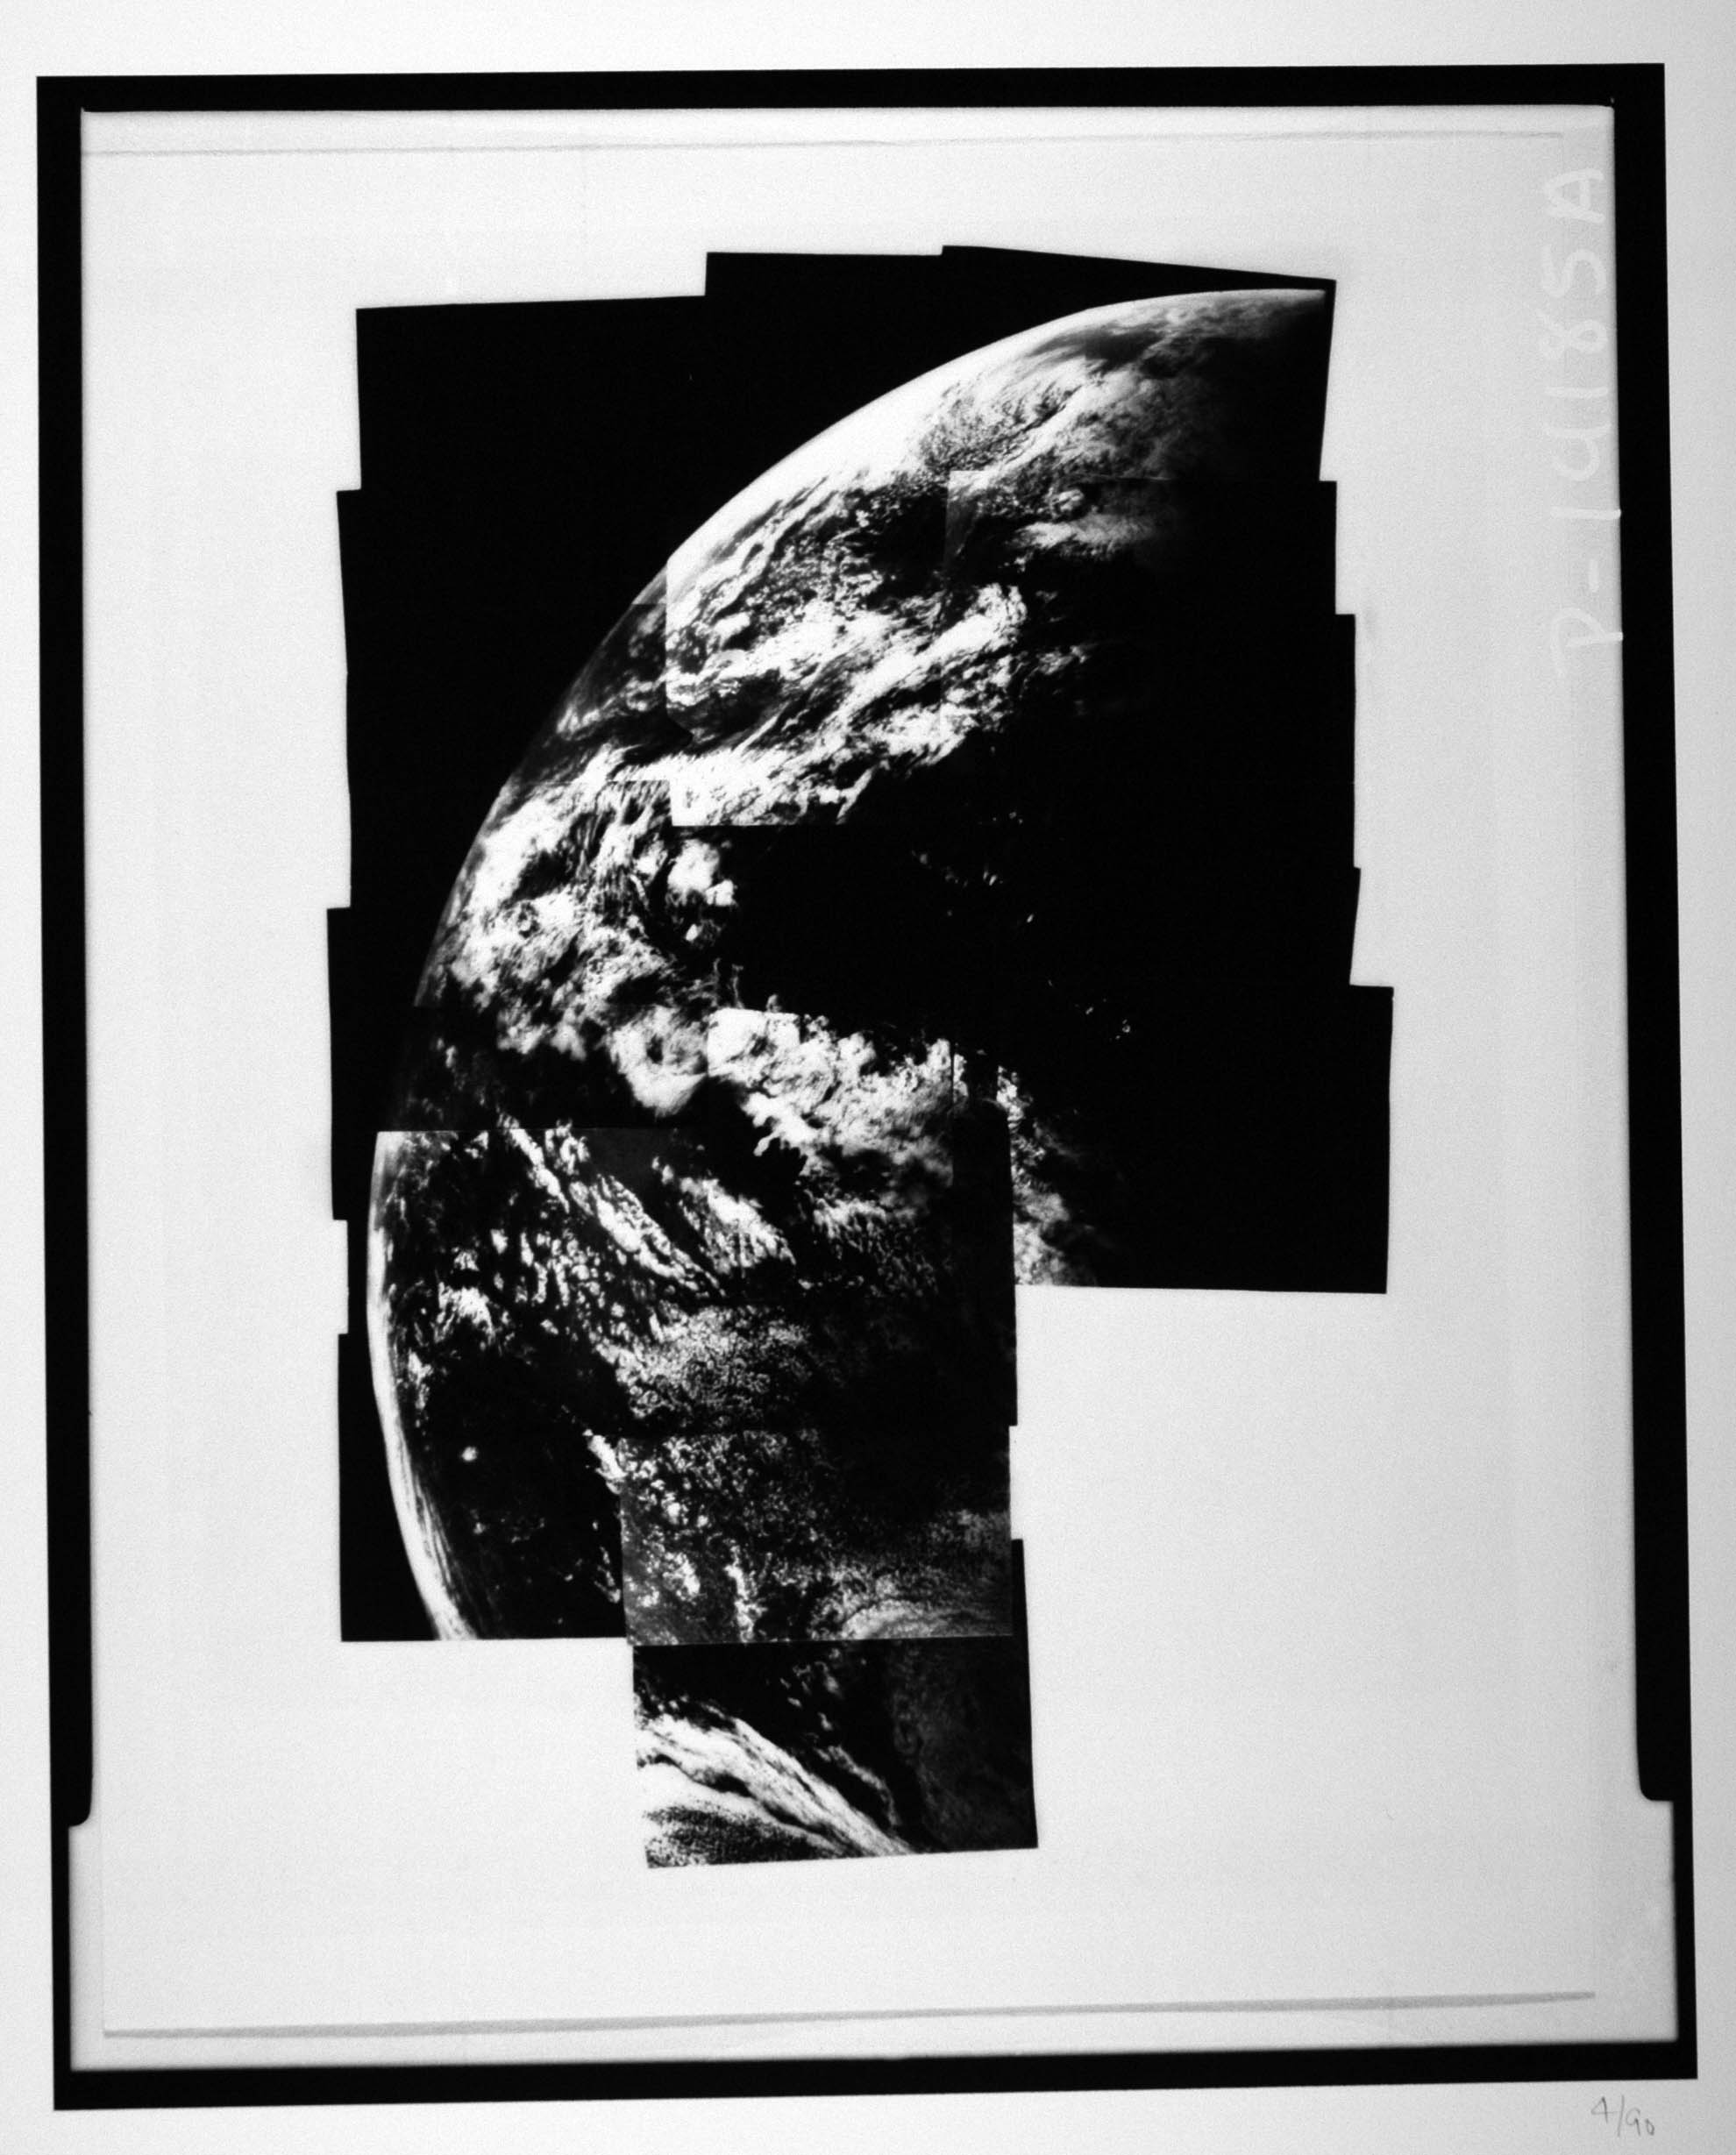 Mariner 10-3 November 1973. Photomosaic of Earth